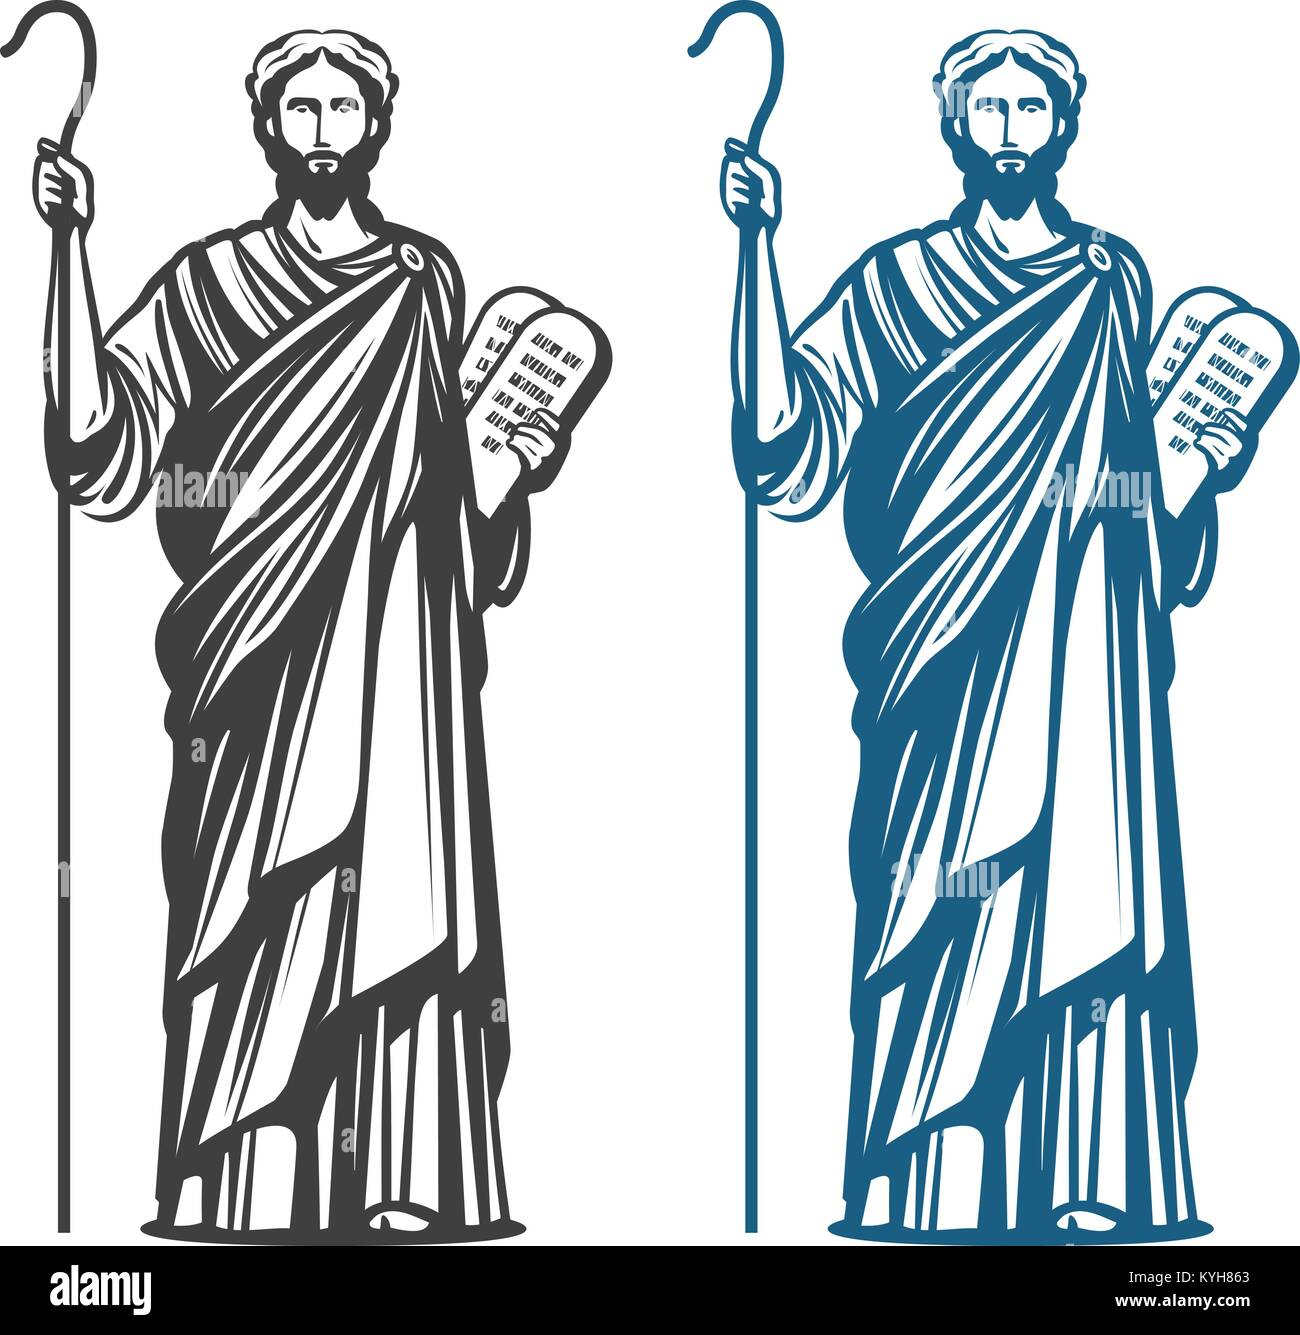 Two Stone Tablets Of The Ten Commandments High Resolution Stock Photography And Images Alamy